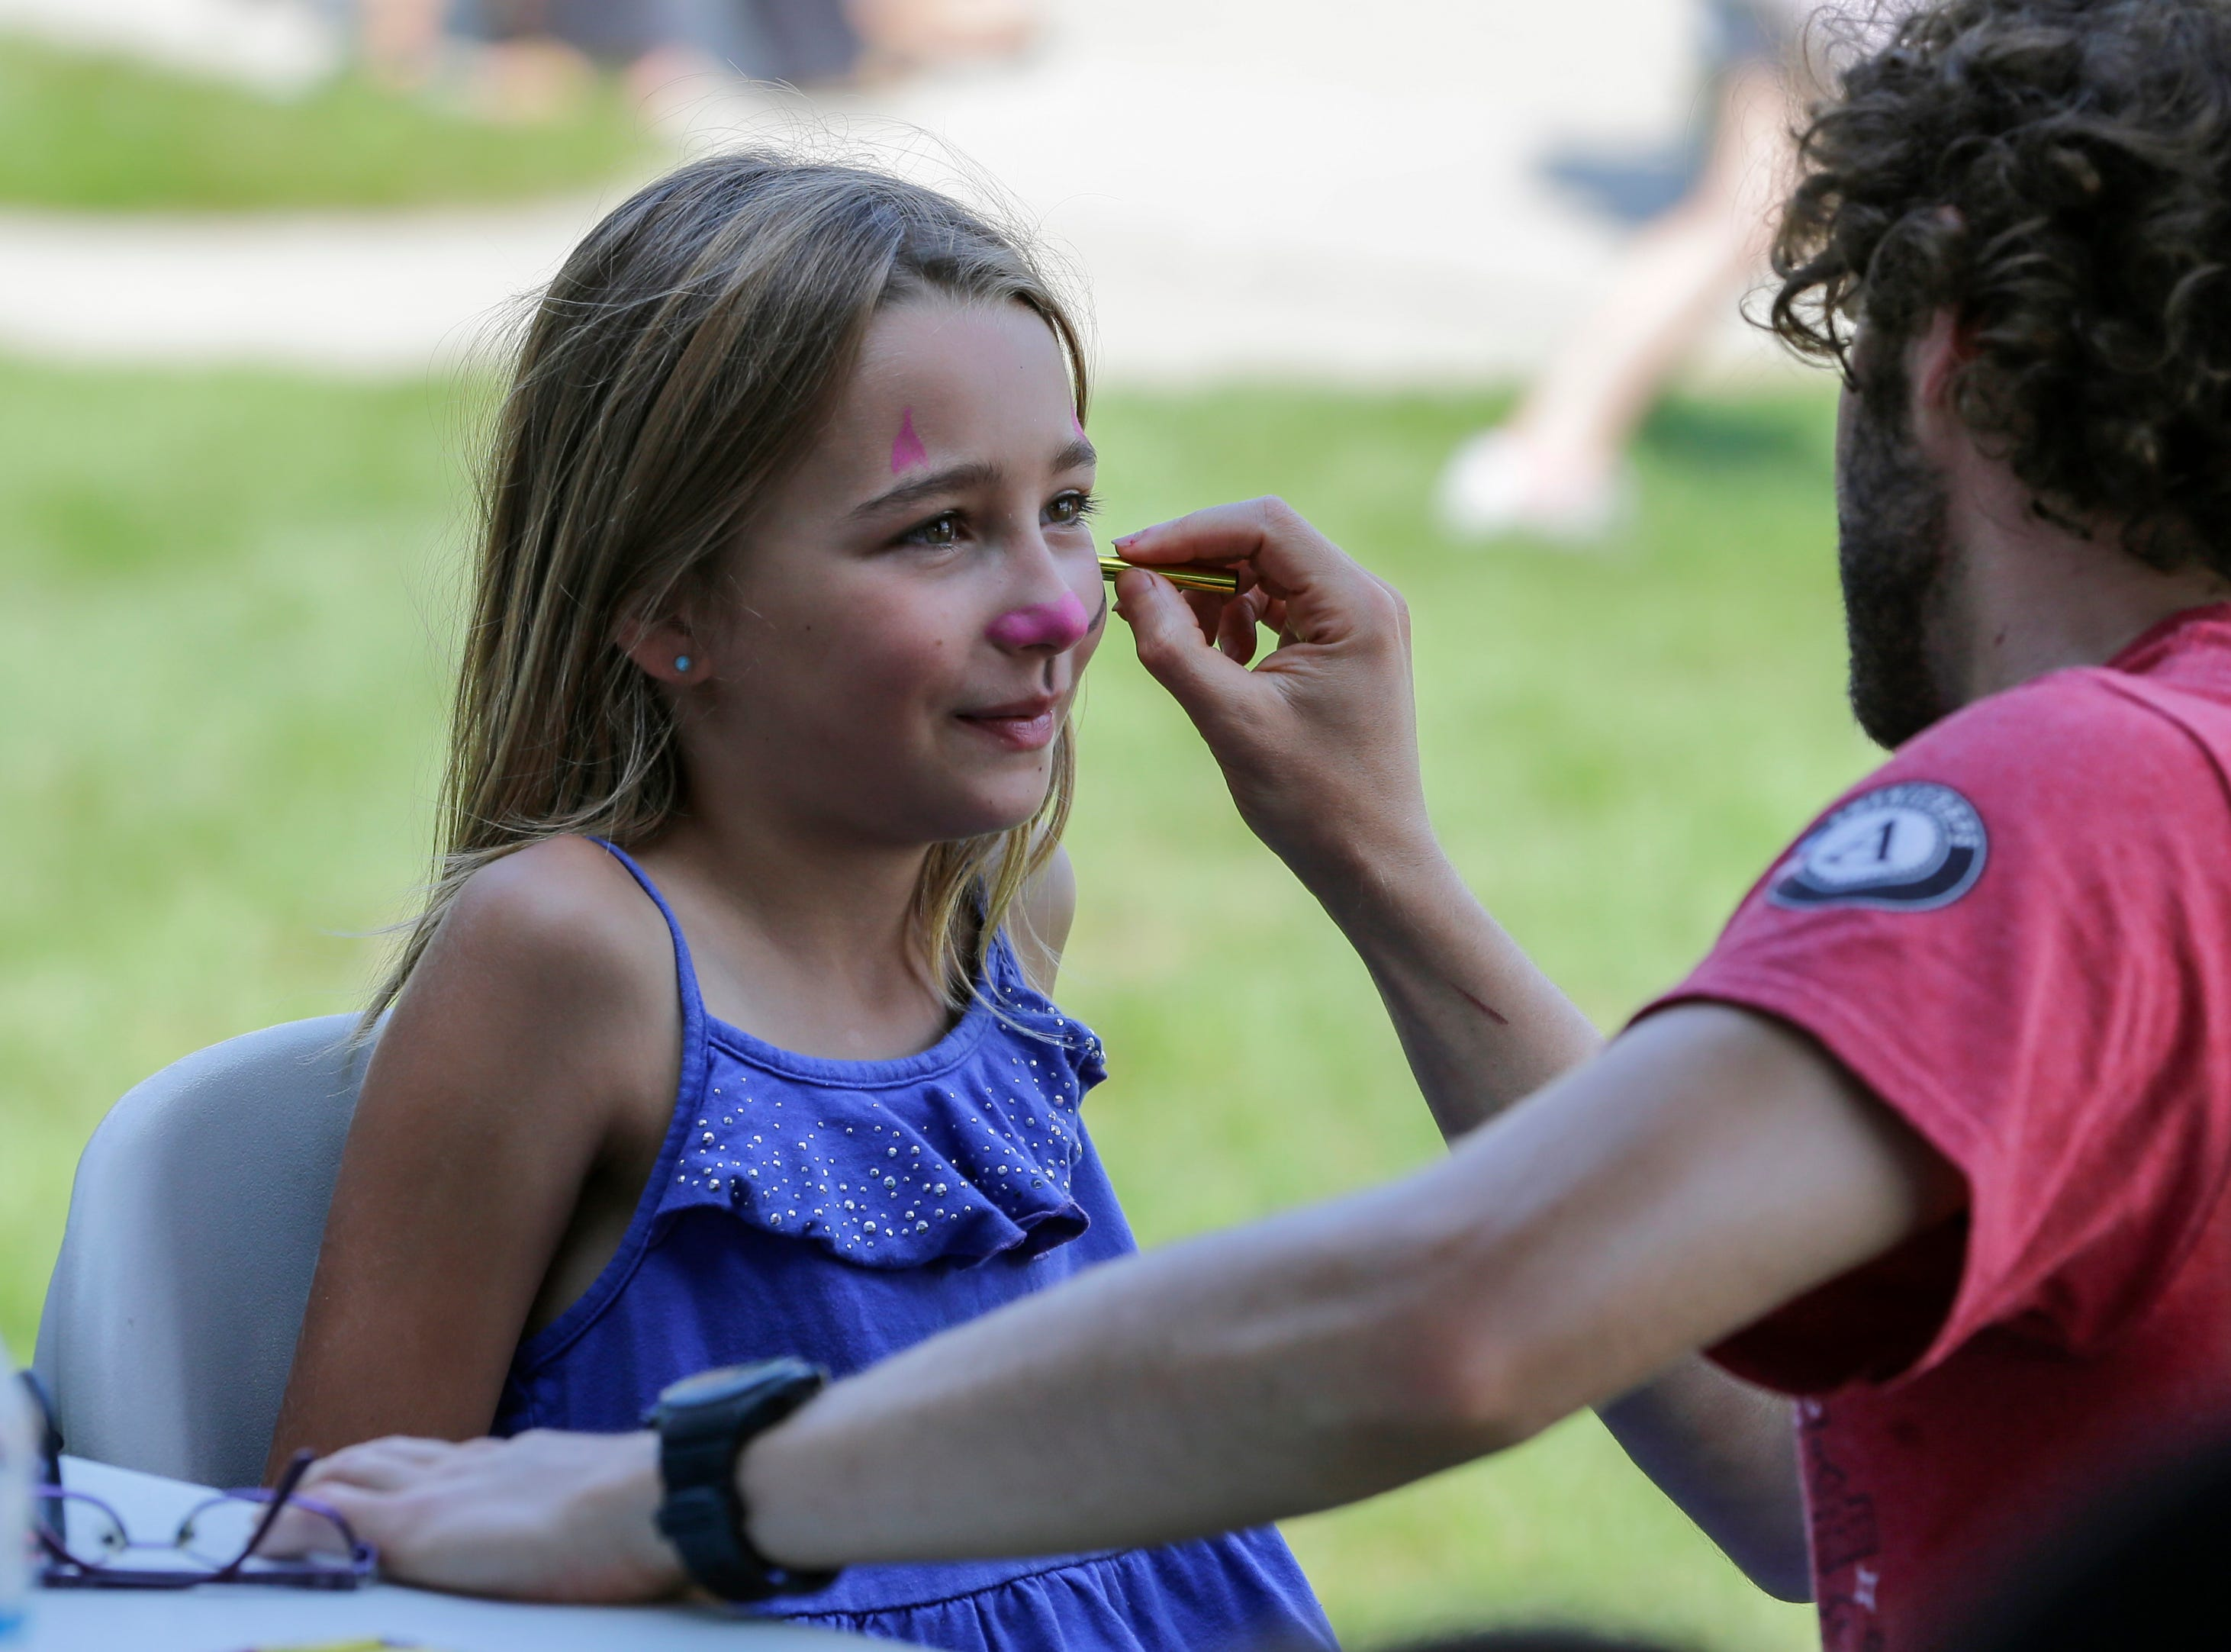 Face painting at the library carnival Saturday, August 4, 2018, in Manitowoc, Wis. Josh Clark/USA TODAY NETWORK-Wisconsin